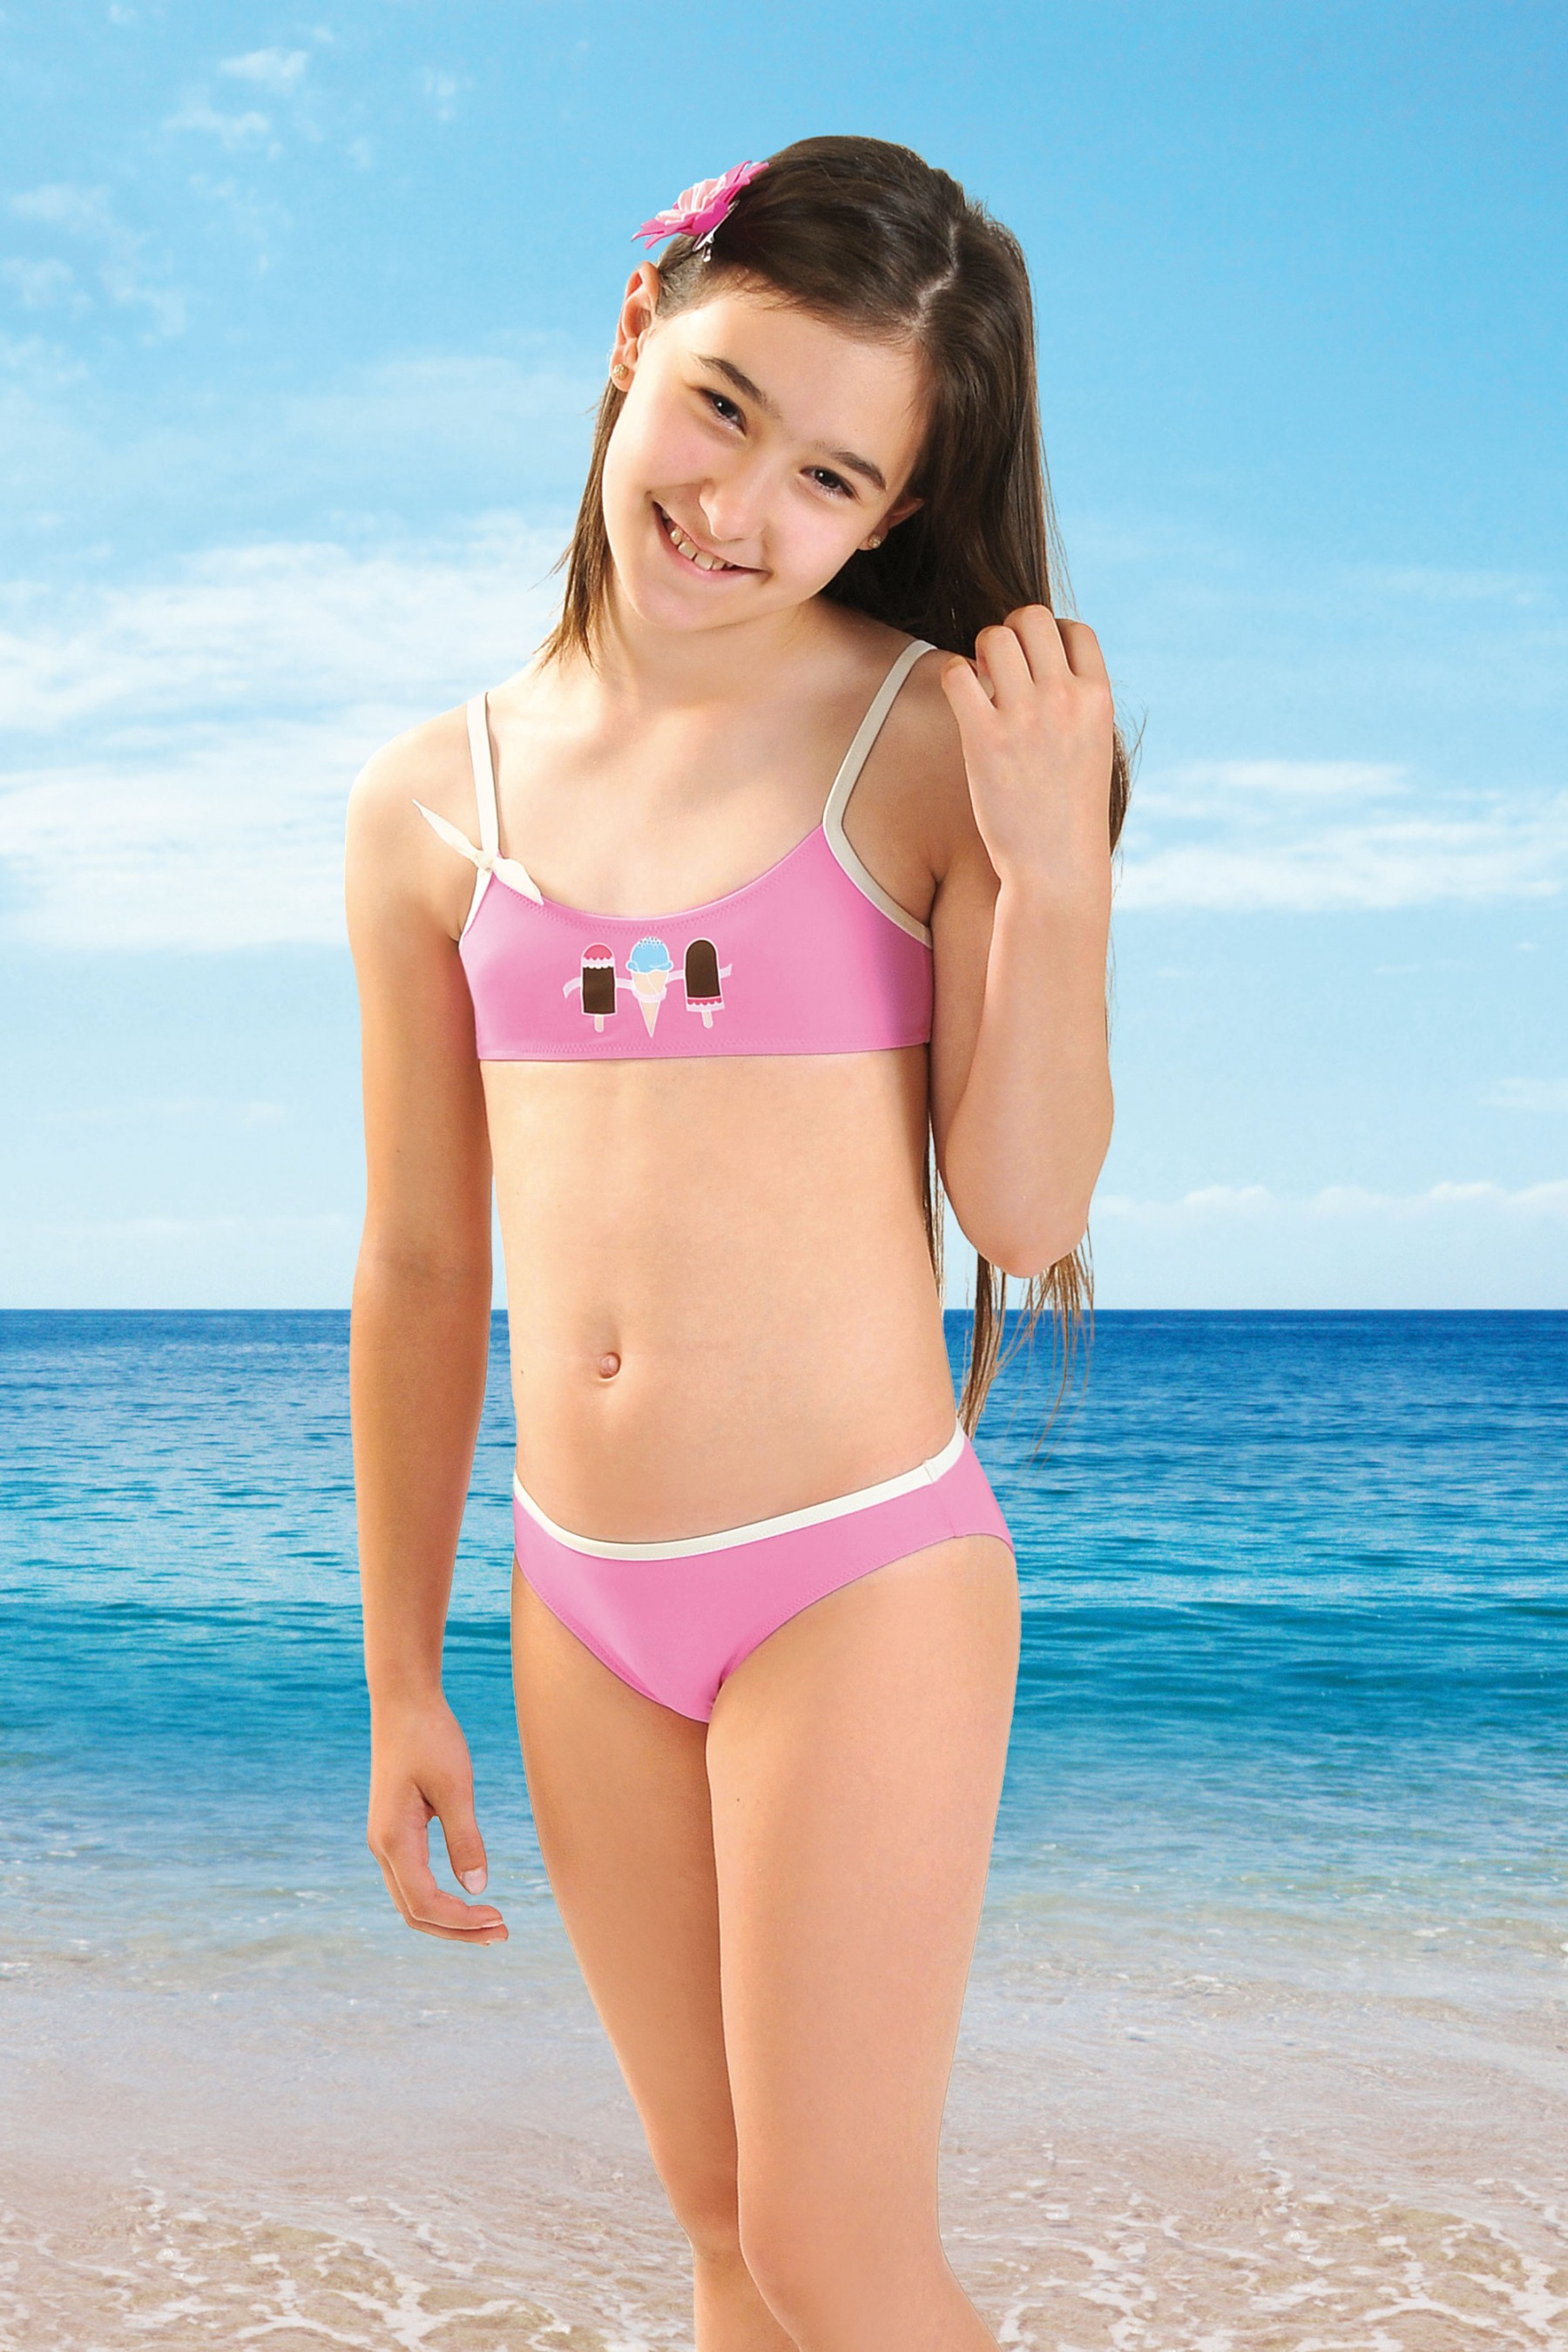 Babe female bikini swimwear the best way